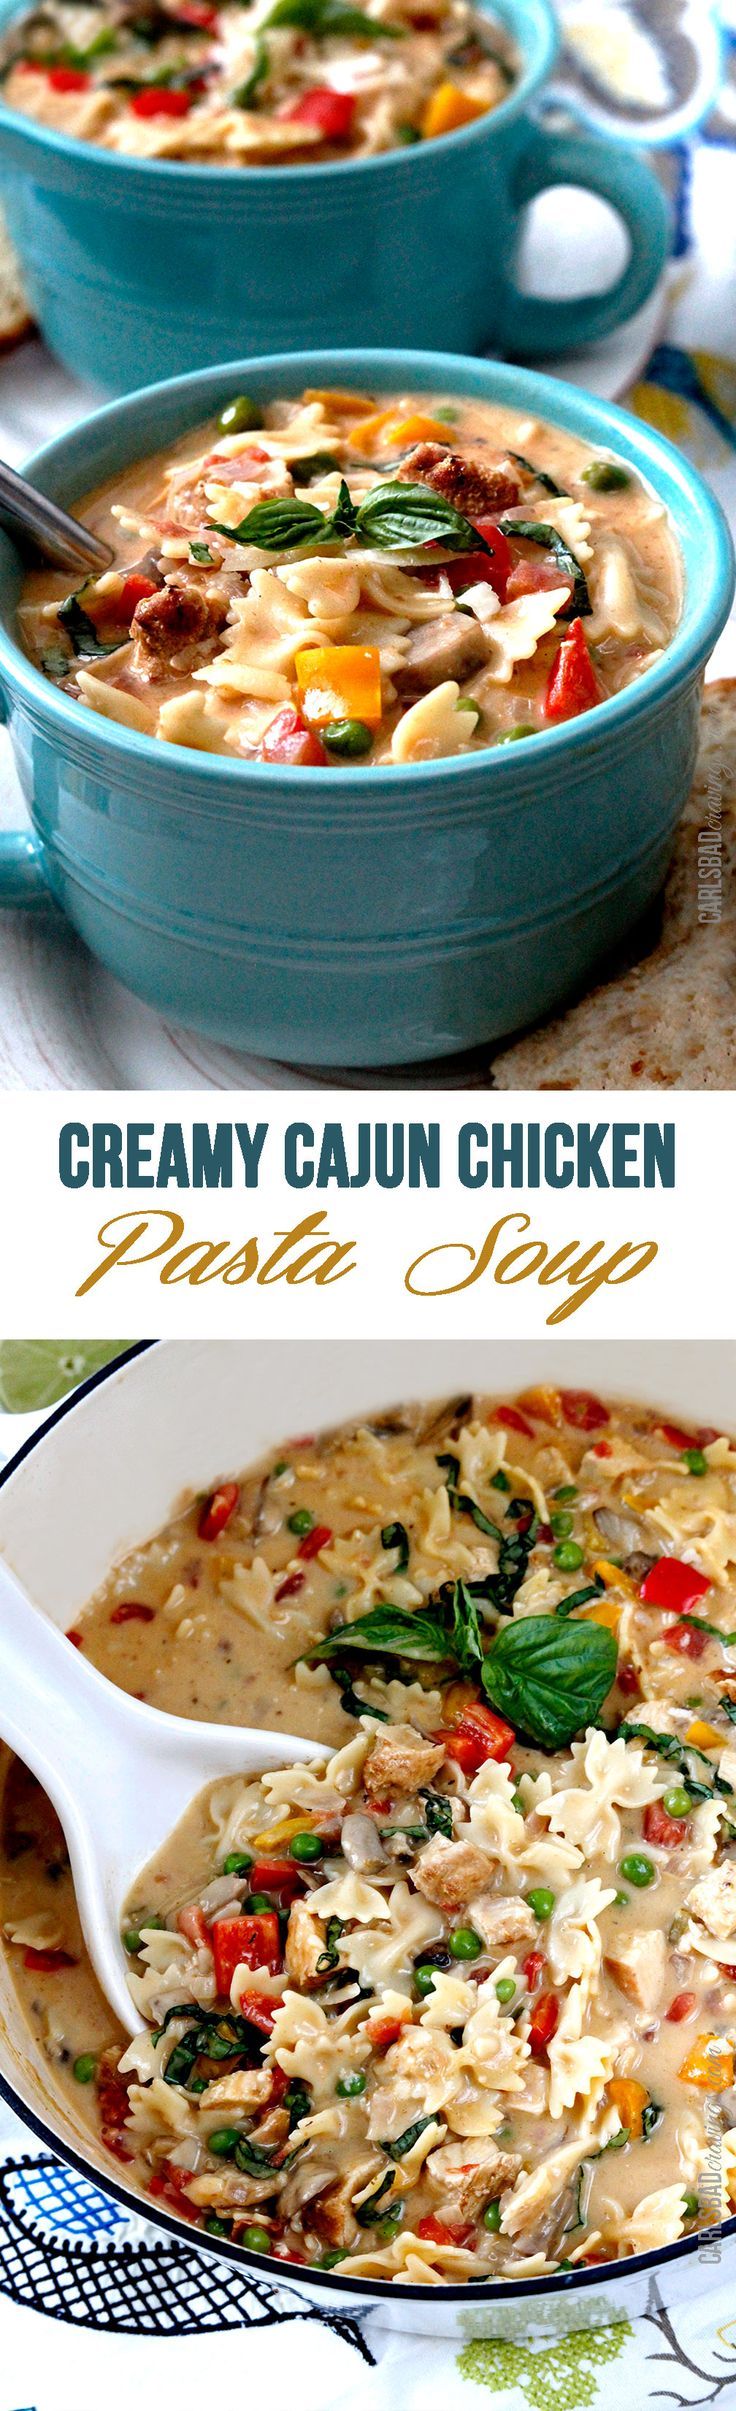 Creamy Cajun Chicken Pasta Soup - Everything you love about Cajun Chicken Pasta - but in an incredible creamy broth! #soup #cajun #pasta